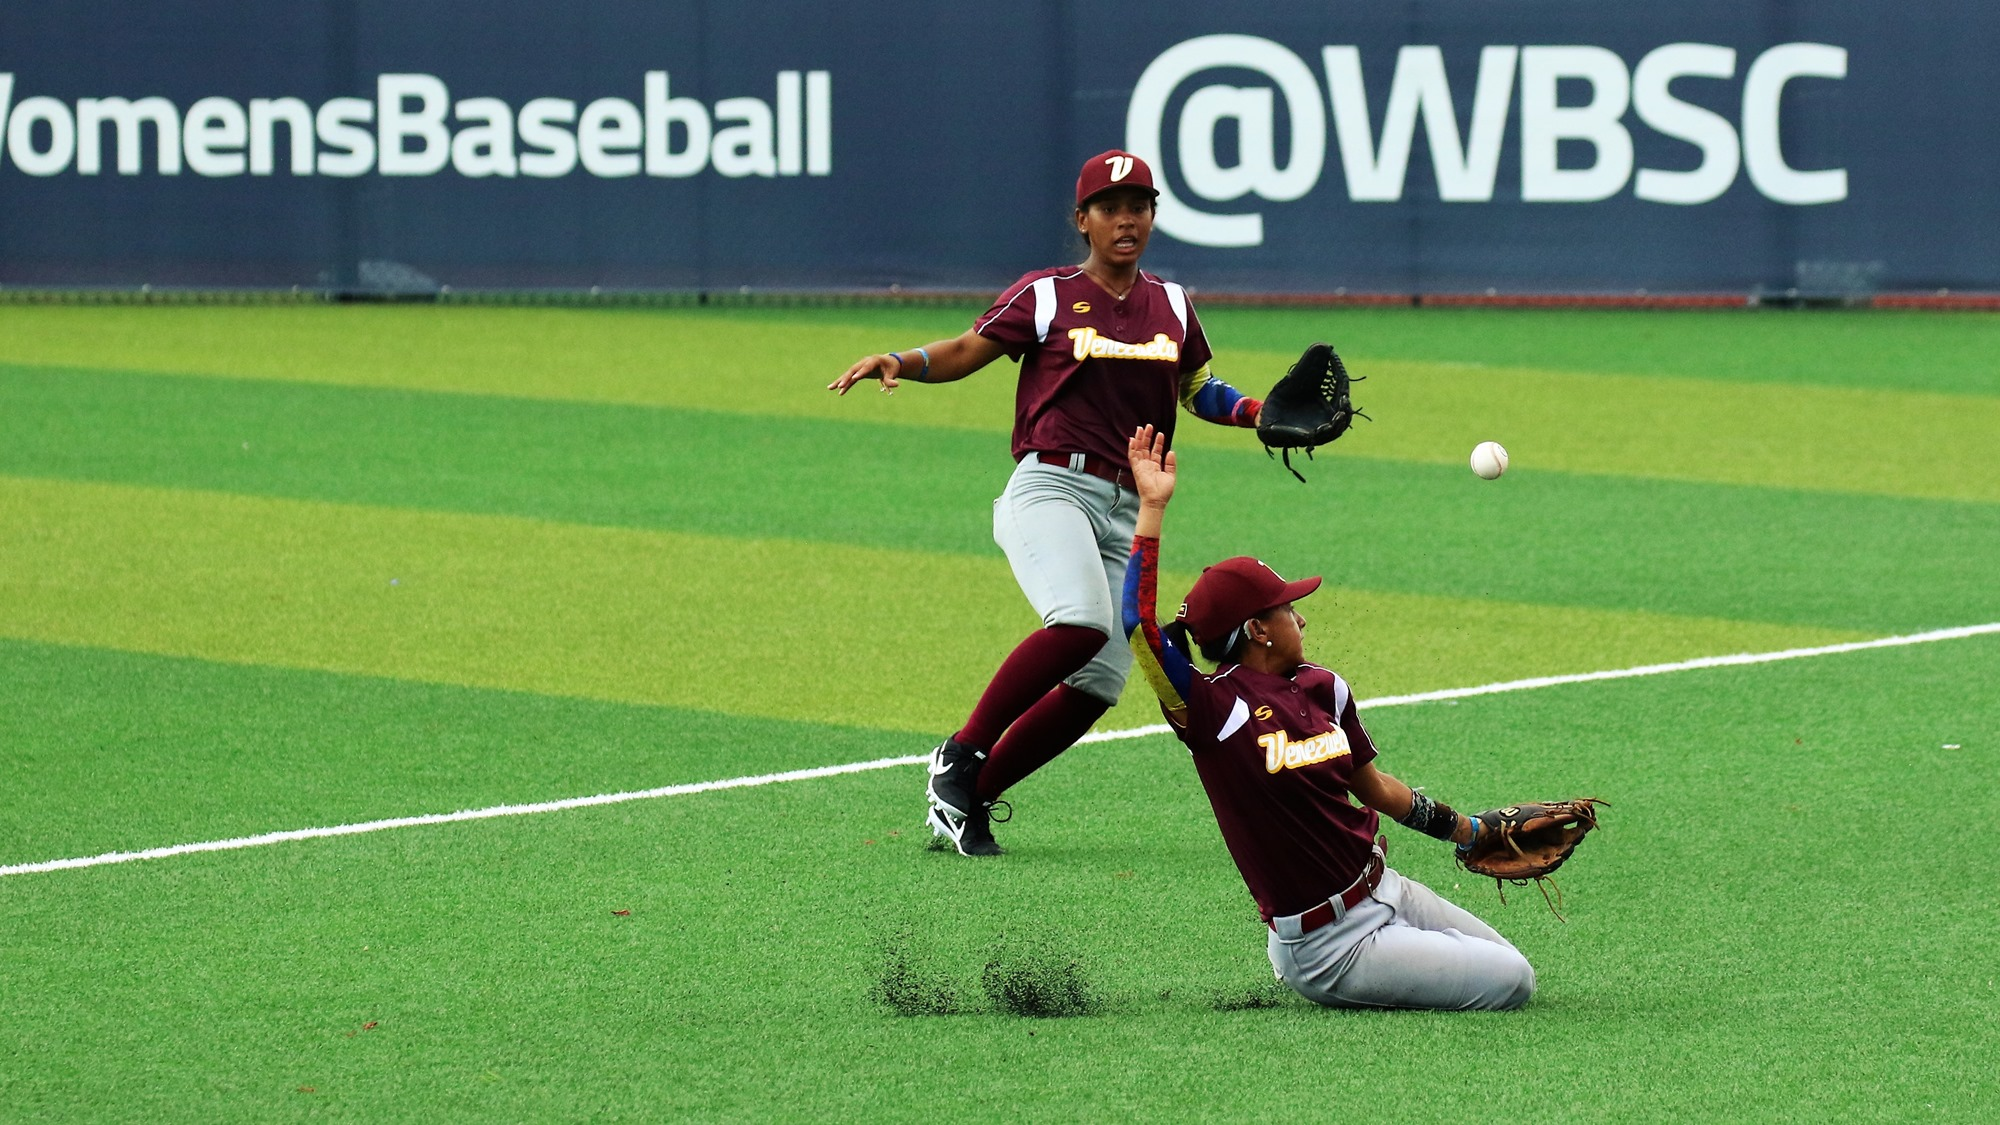 Ingrid Escobar and Yusneiby Acacio chase a fly ball in foul territory